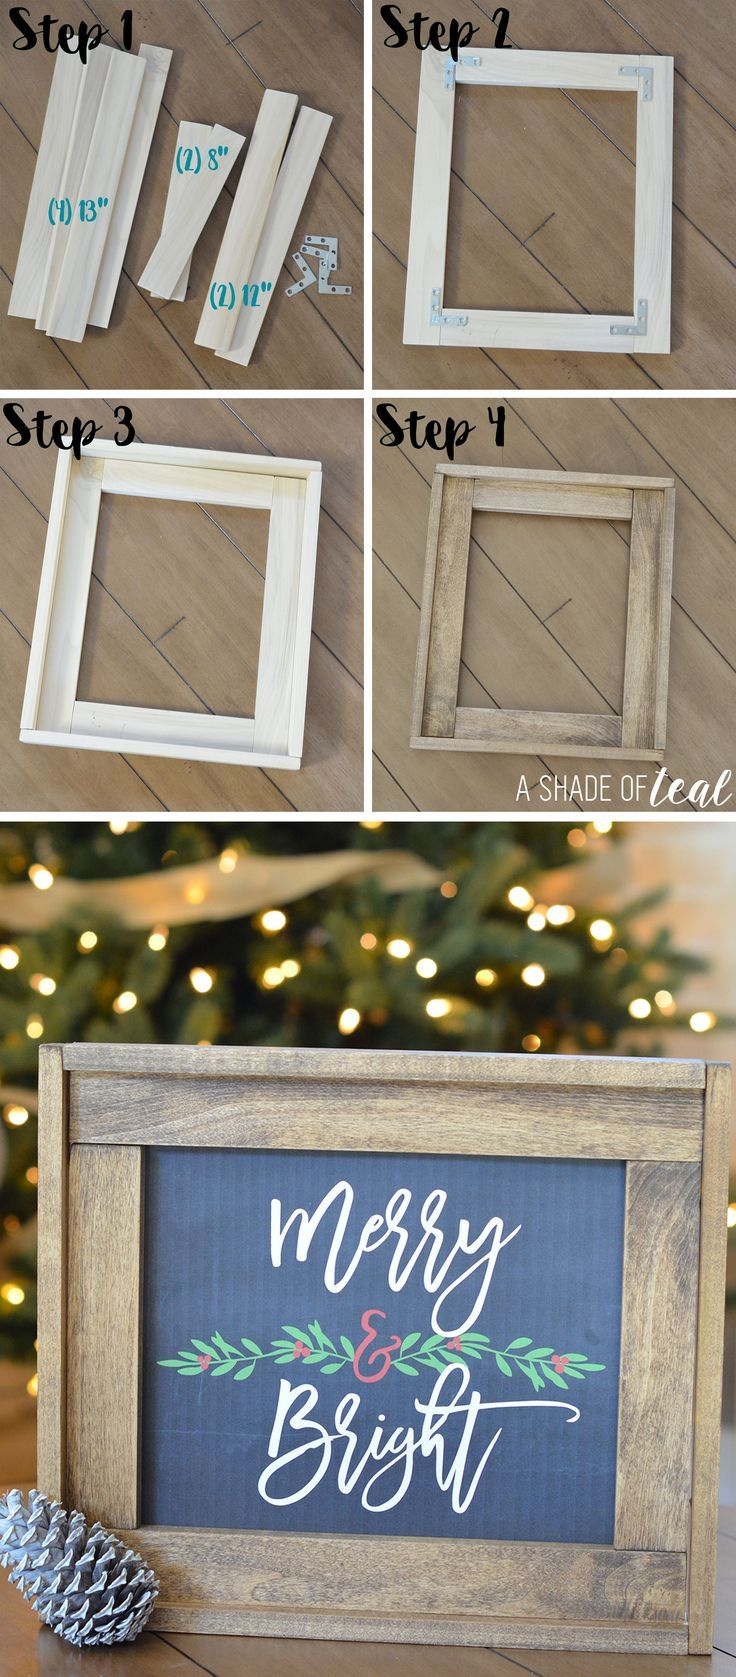 Christmas Mantle Update, How to make a Rustic Wood Frame | Mueble ...